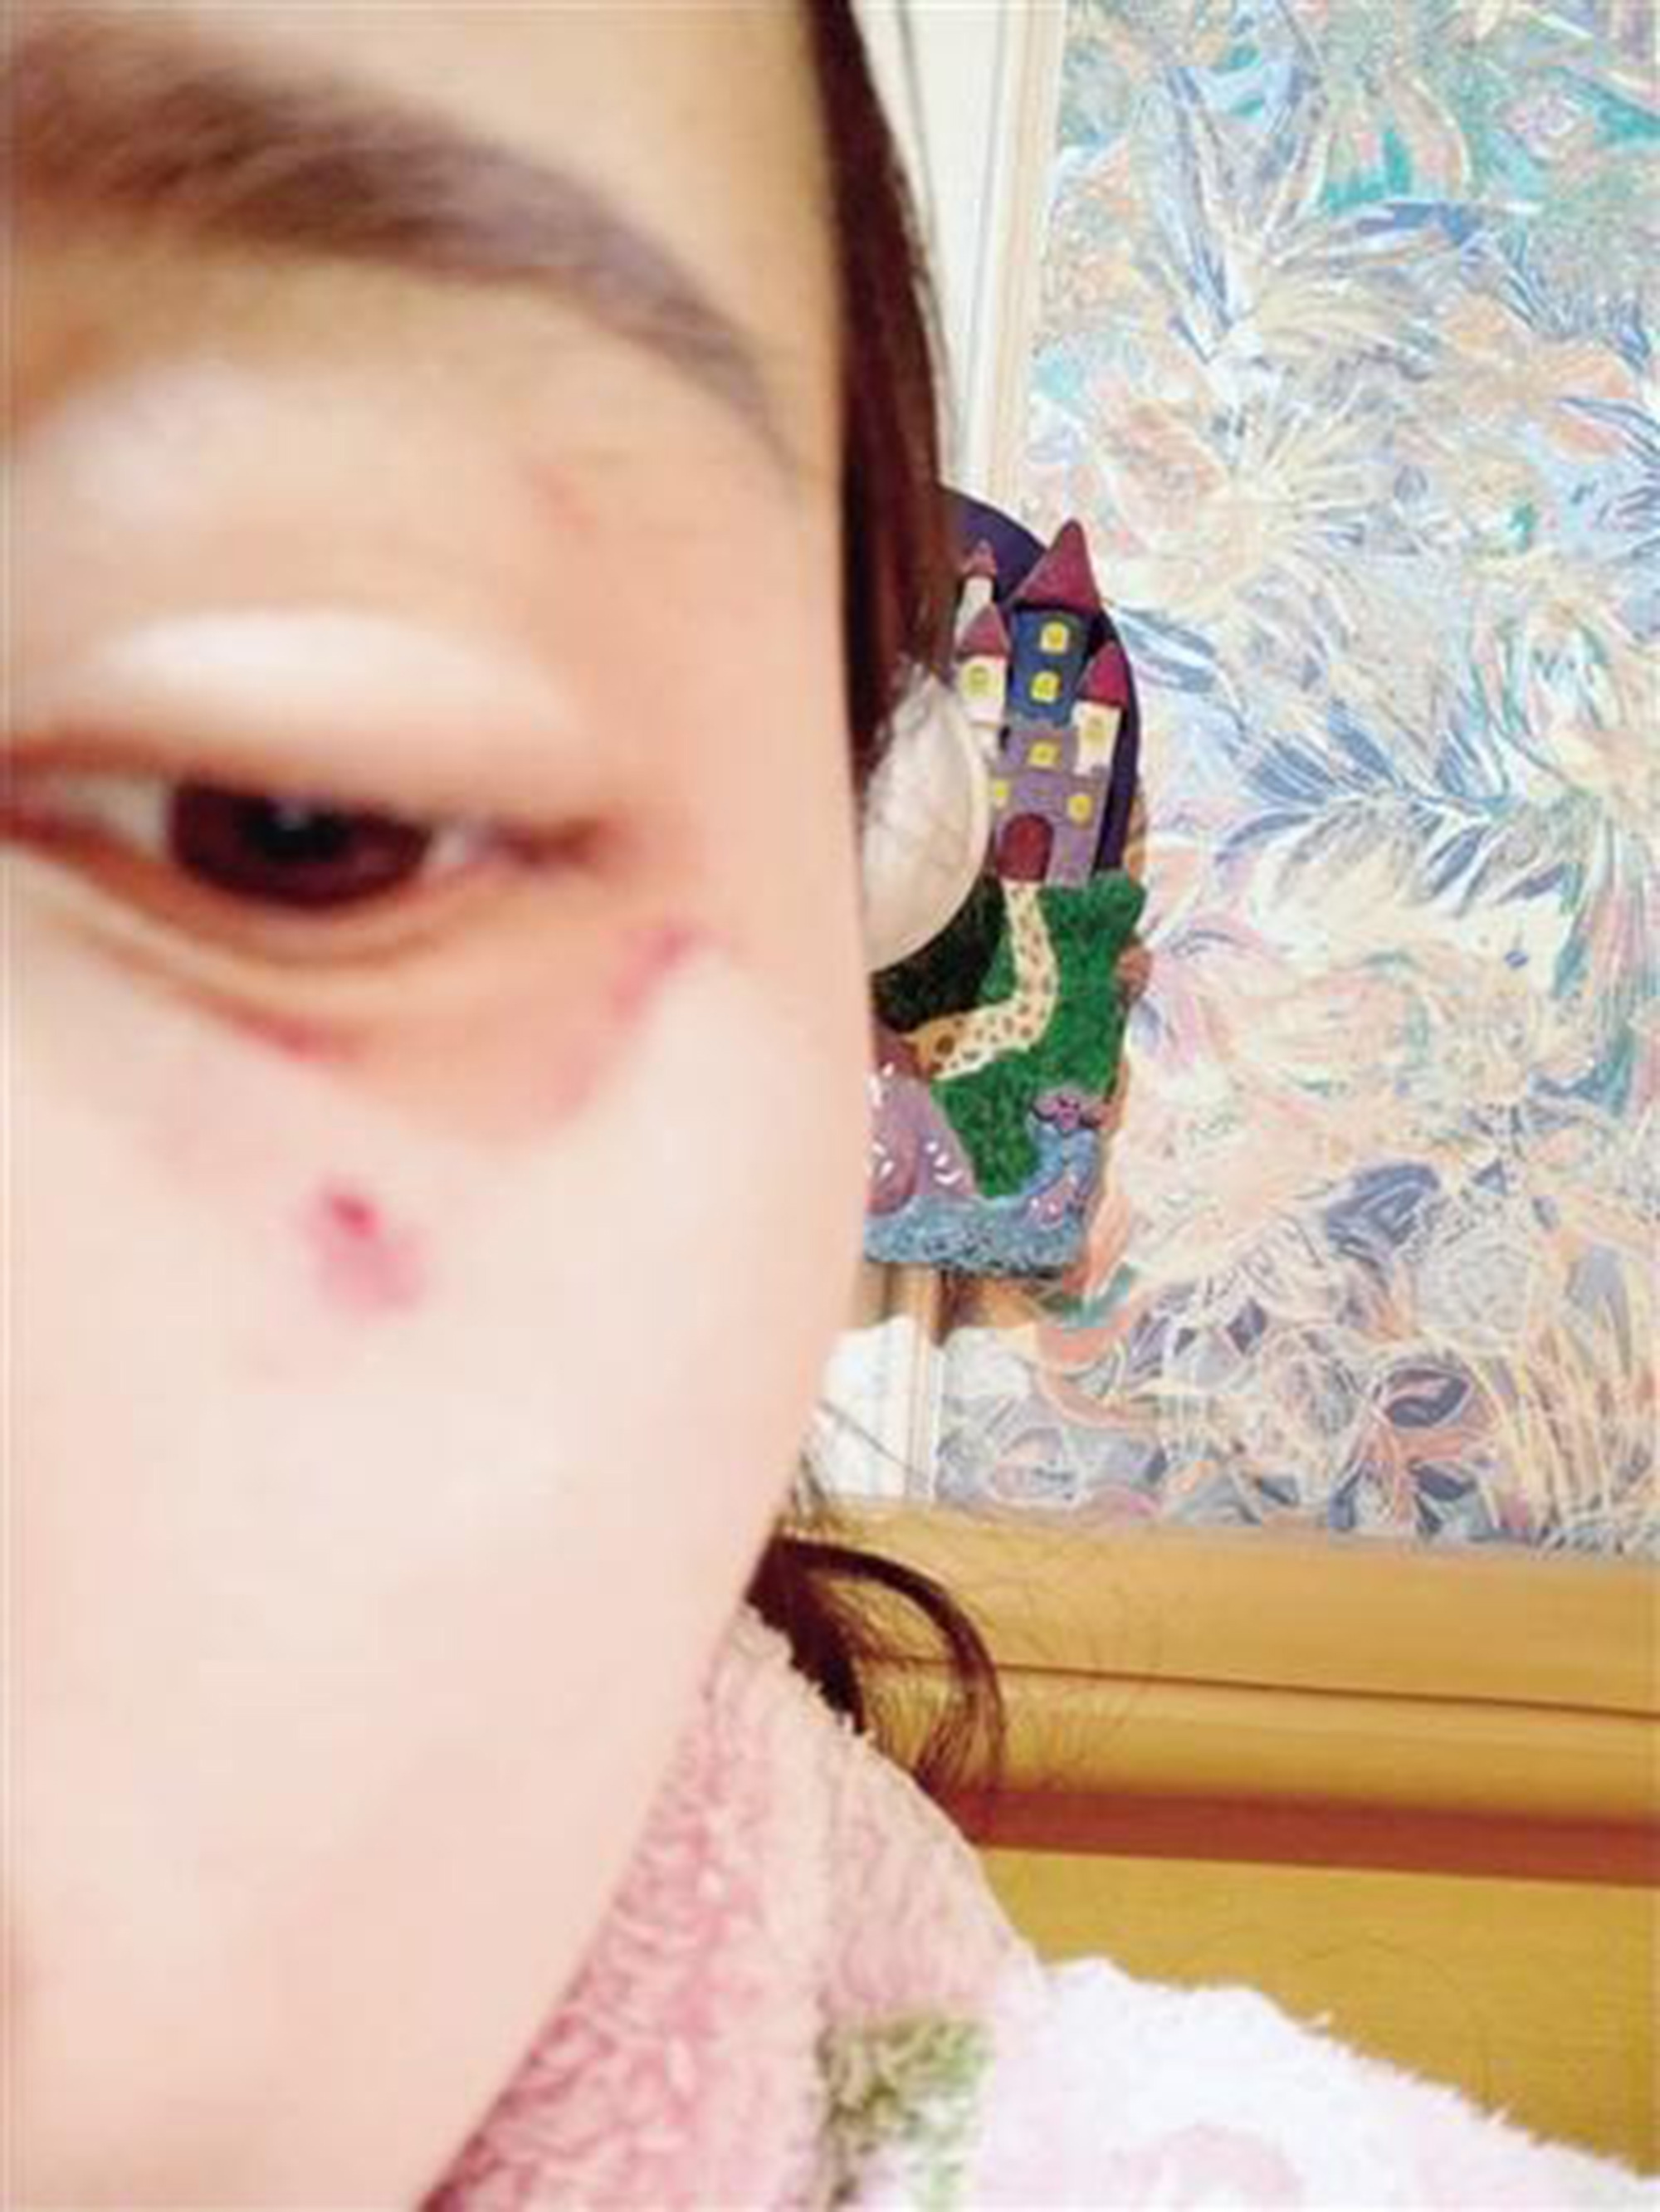 Shop Owner Travels 530 Miles To Punch Woman Who Left Bad Review AsiaWire VendorBeating 05